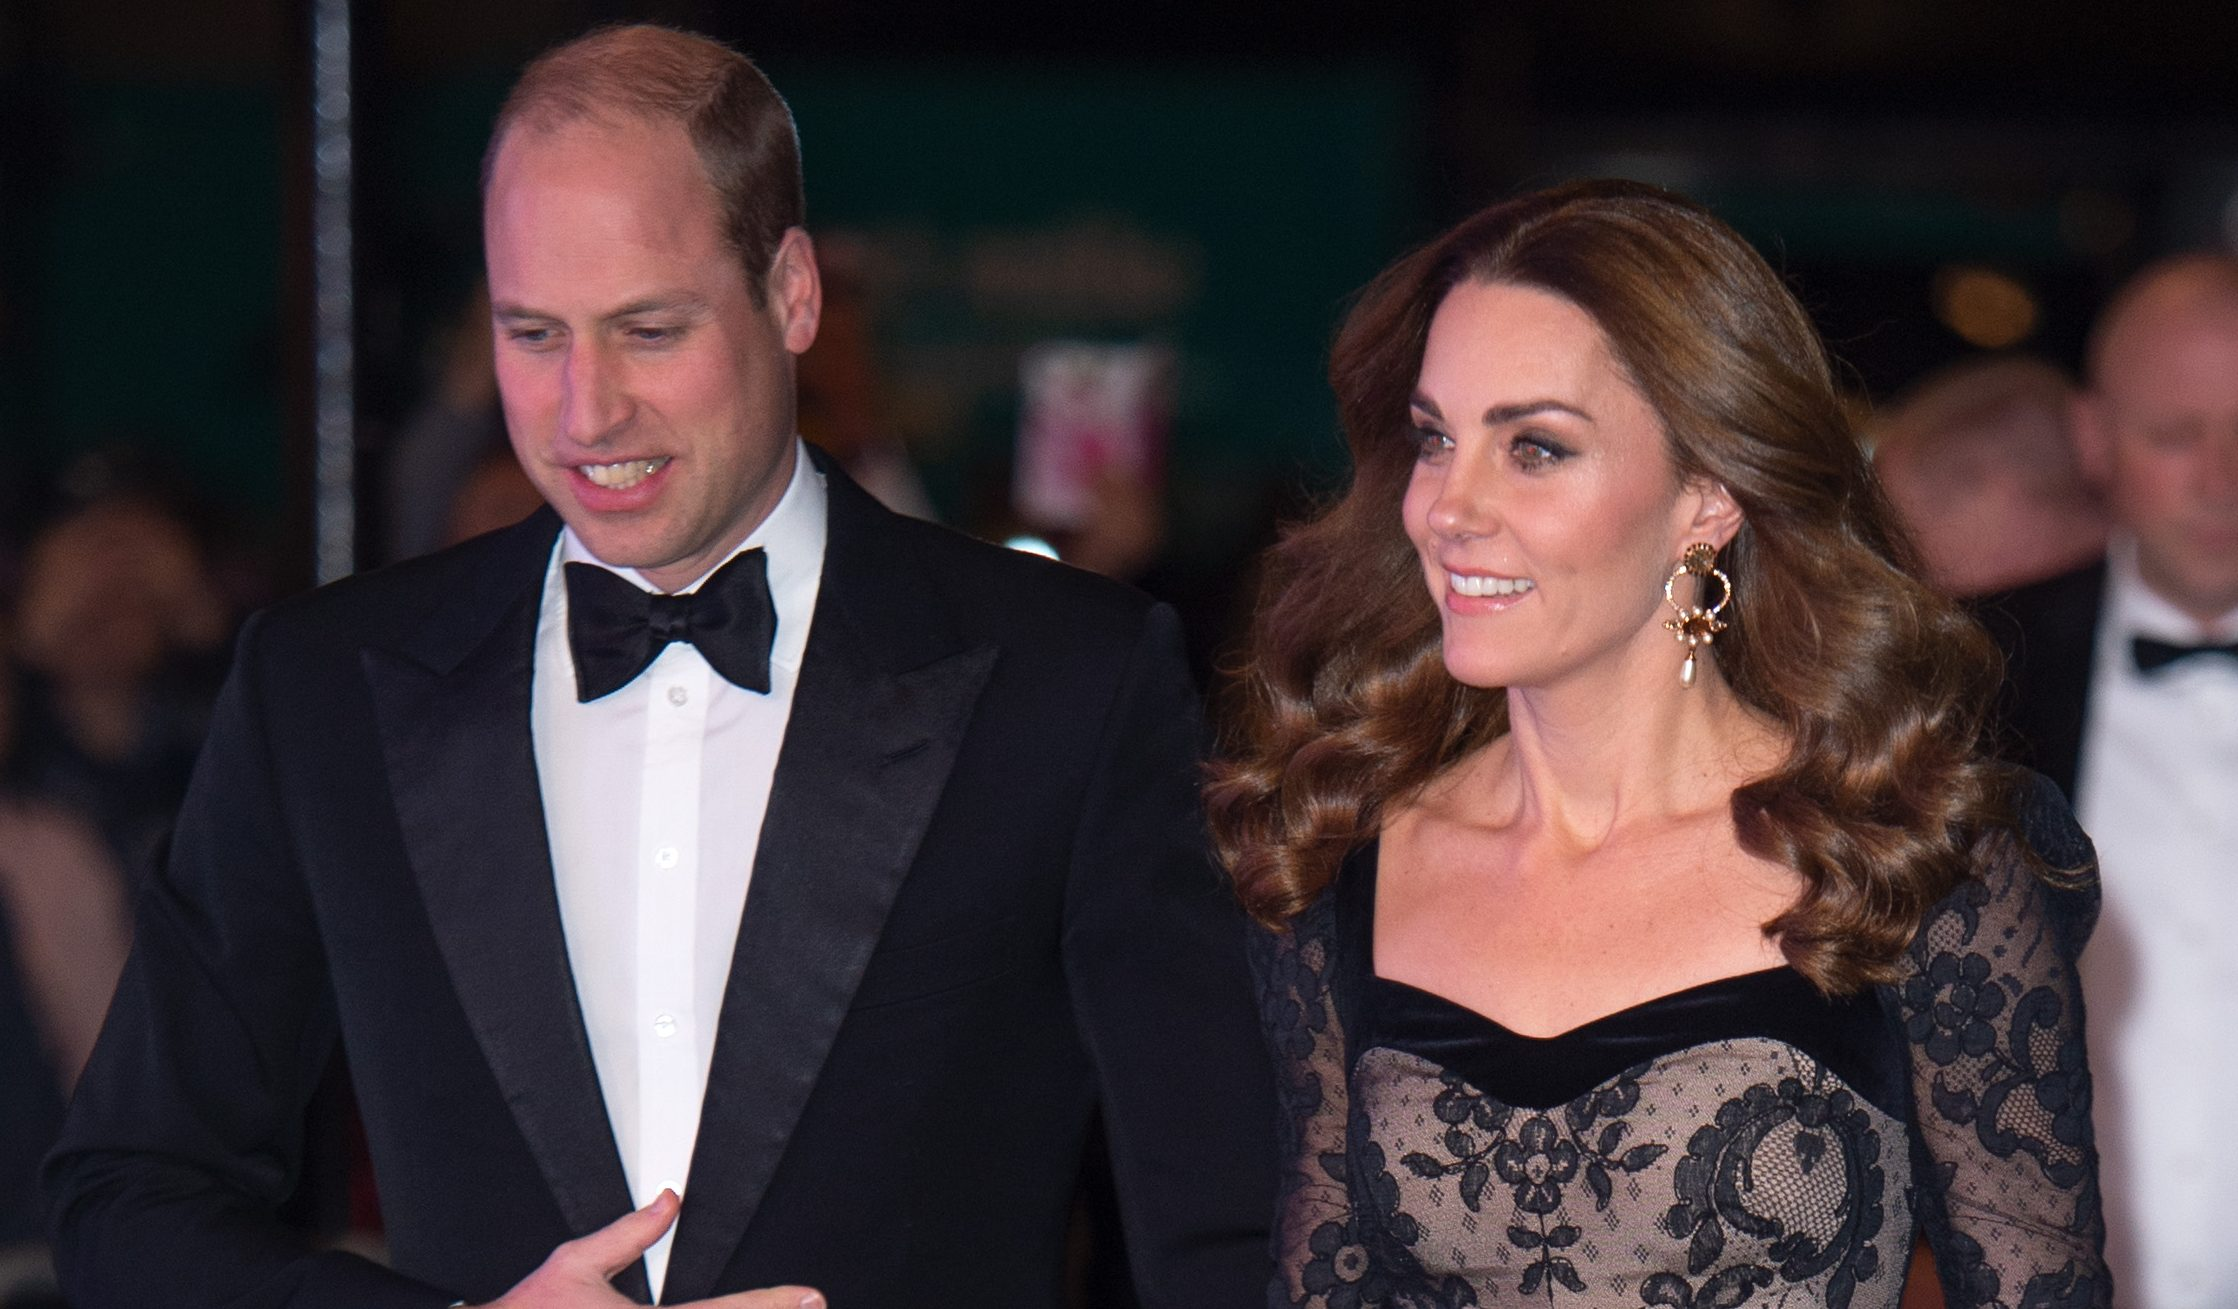 Prince William Launches Major Environmental Prize With Help From Kate